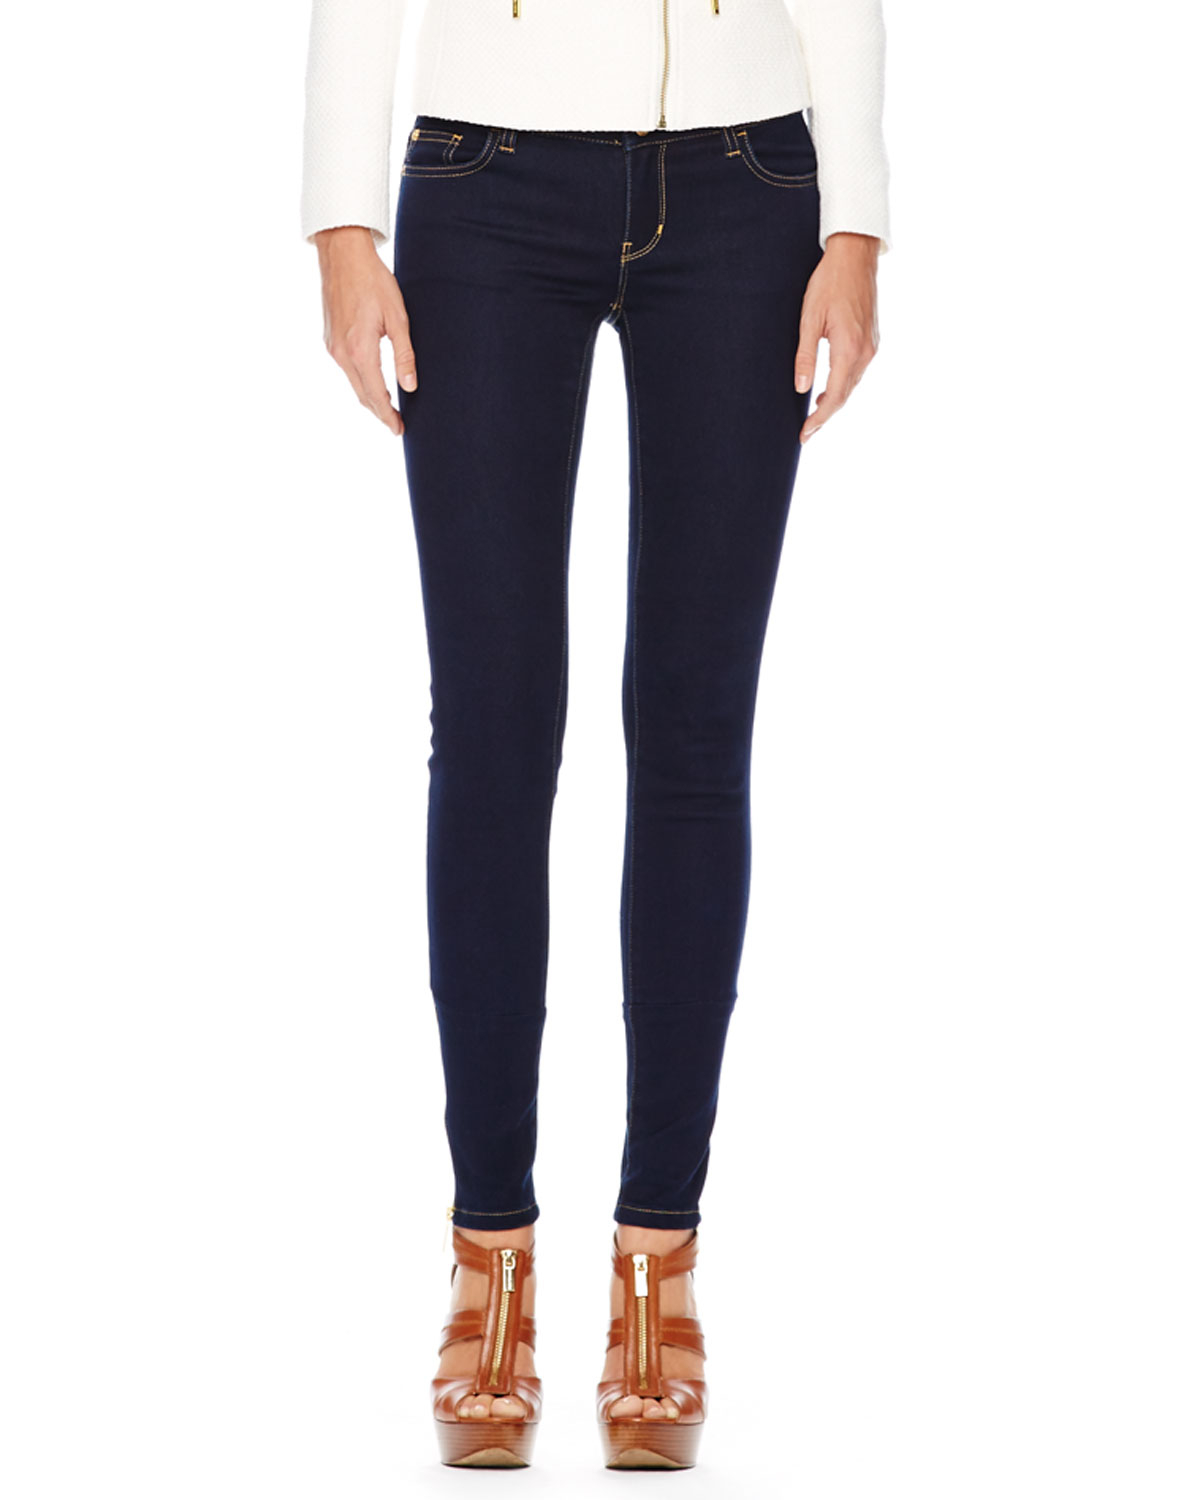 michael michael kors jet set legging jeans in blue twilight wash lyst. Black Bedroom Furniture Sets. Home Design Ideas